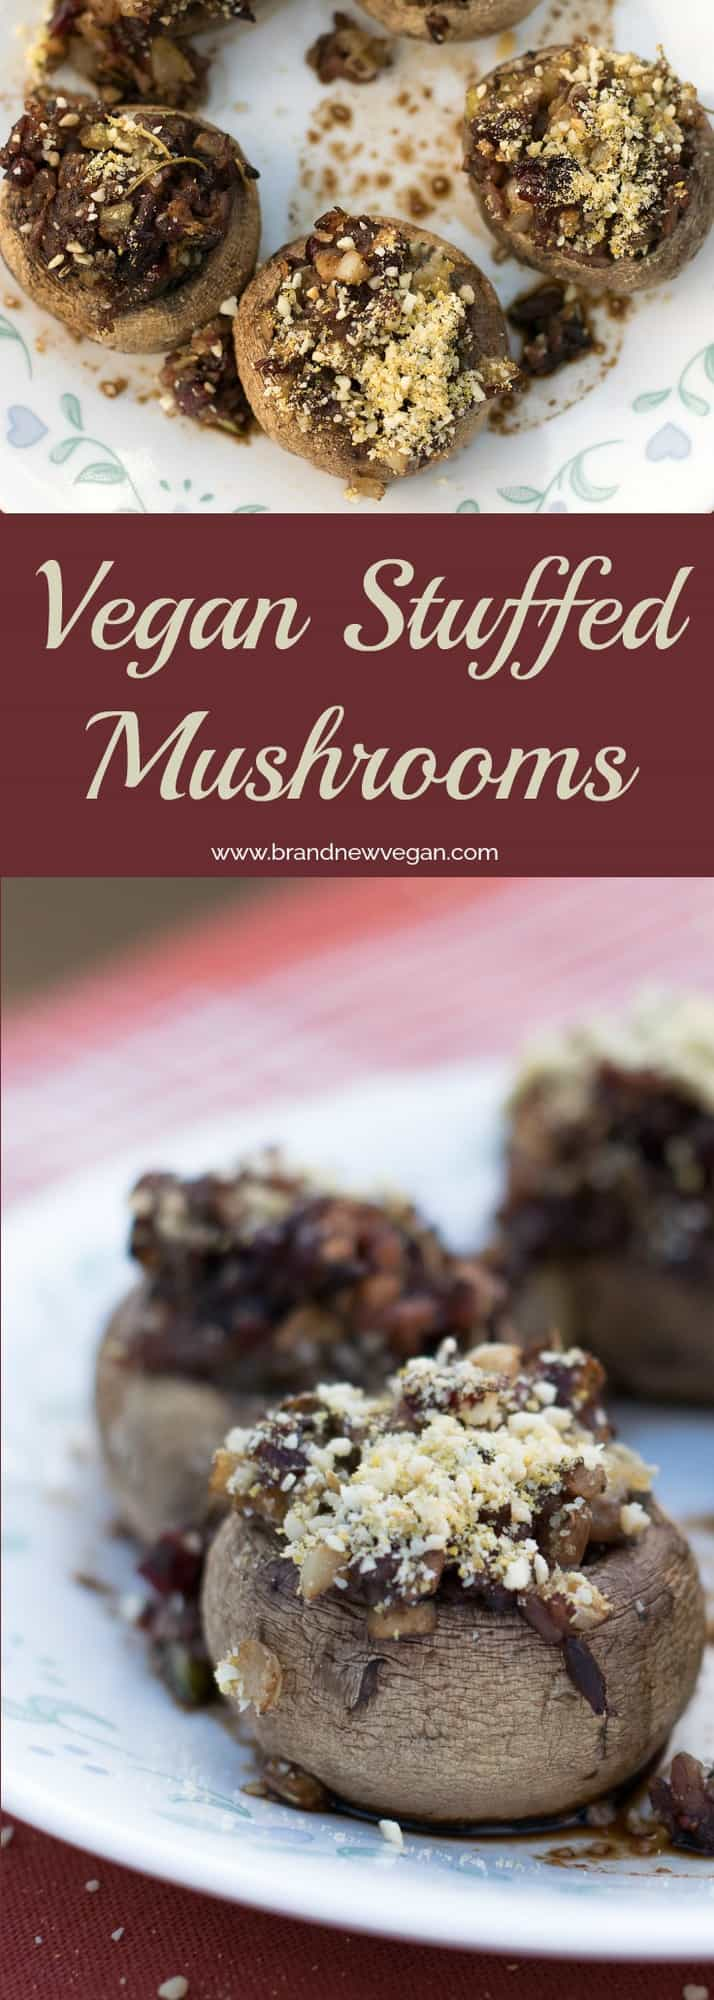 Surely a new holiday favorite, Vegan Stuffed Mushrooms. The stuffing could be a dish all by itself, but becomes magical, stuffed inside Baby Bella Mushrooms.